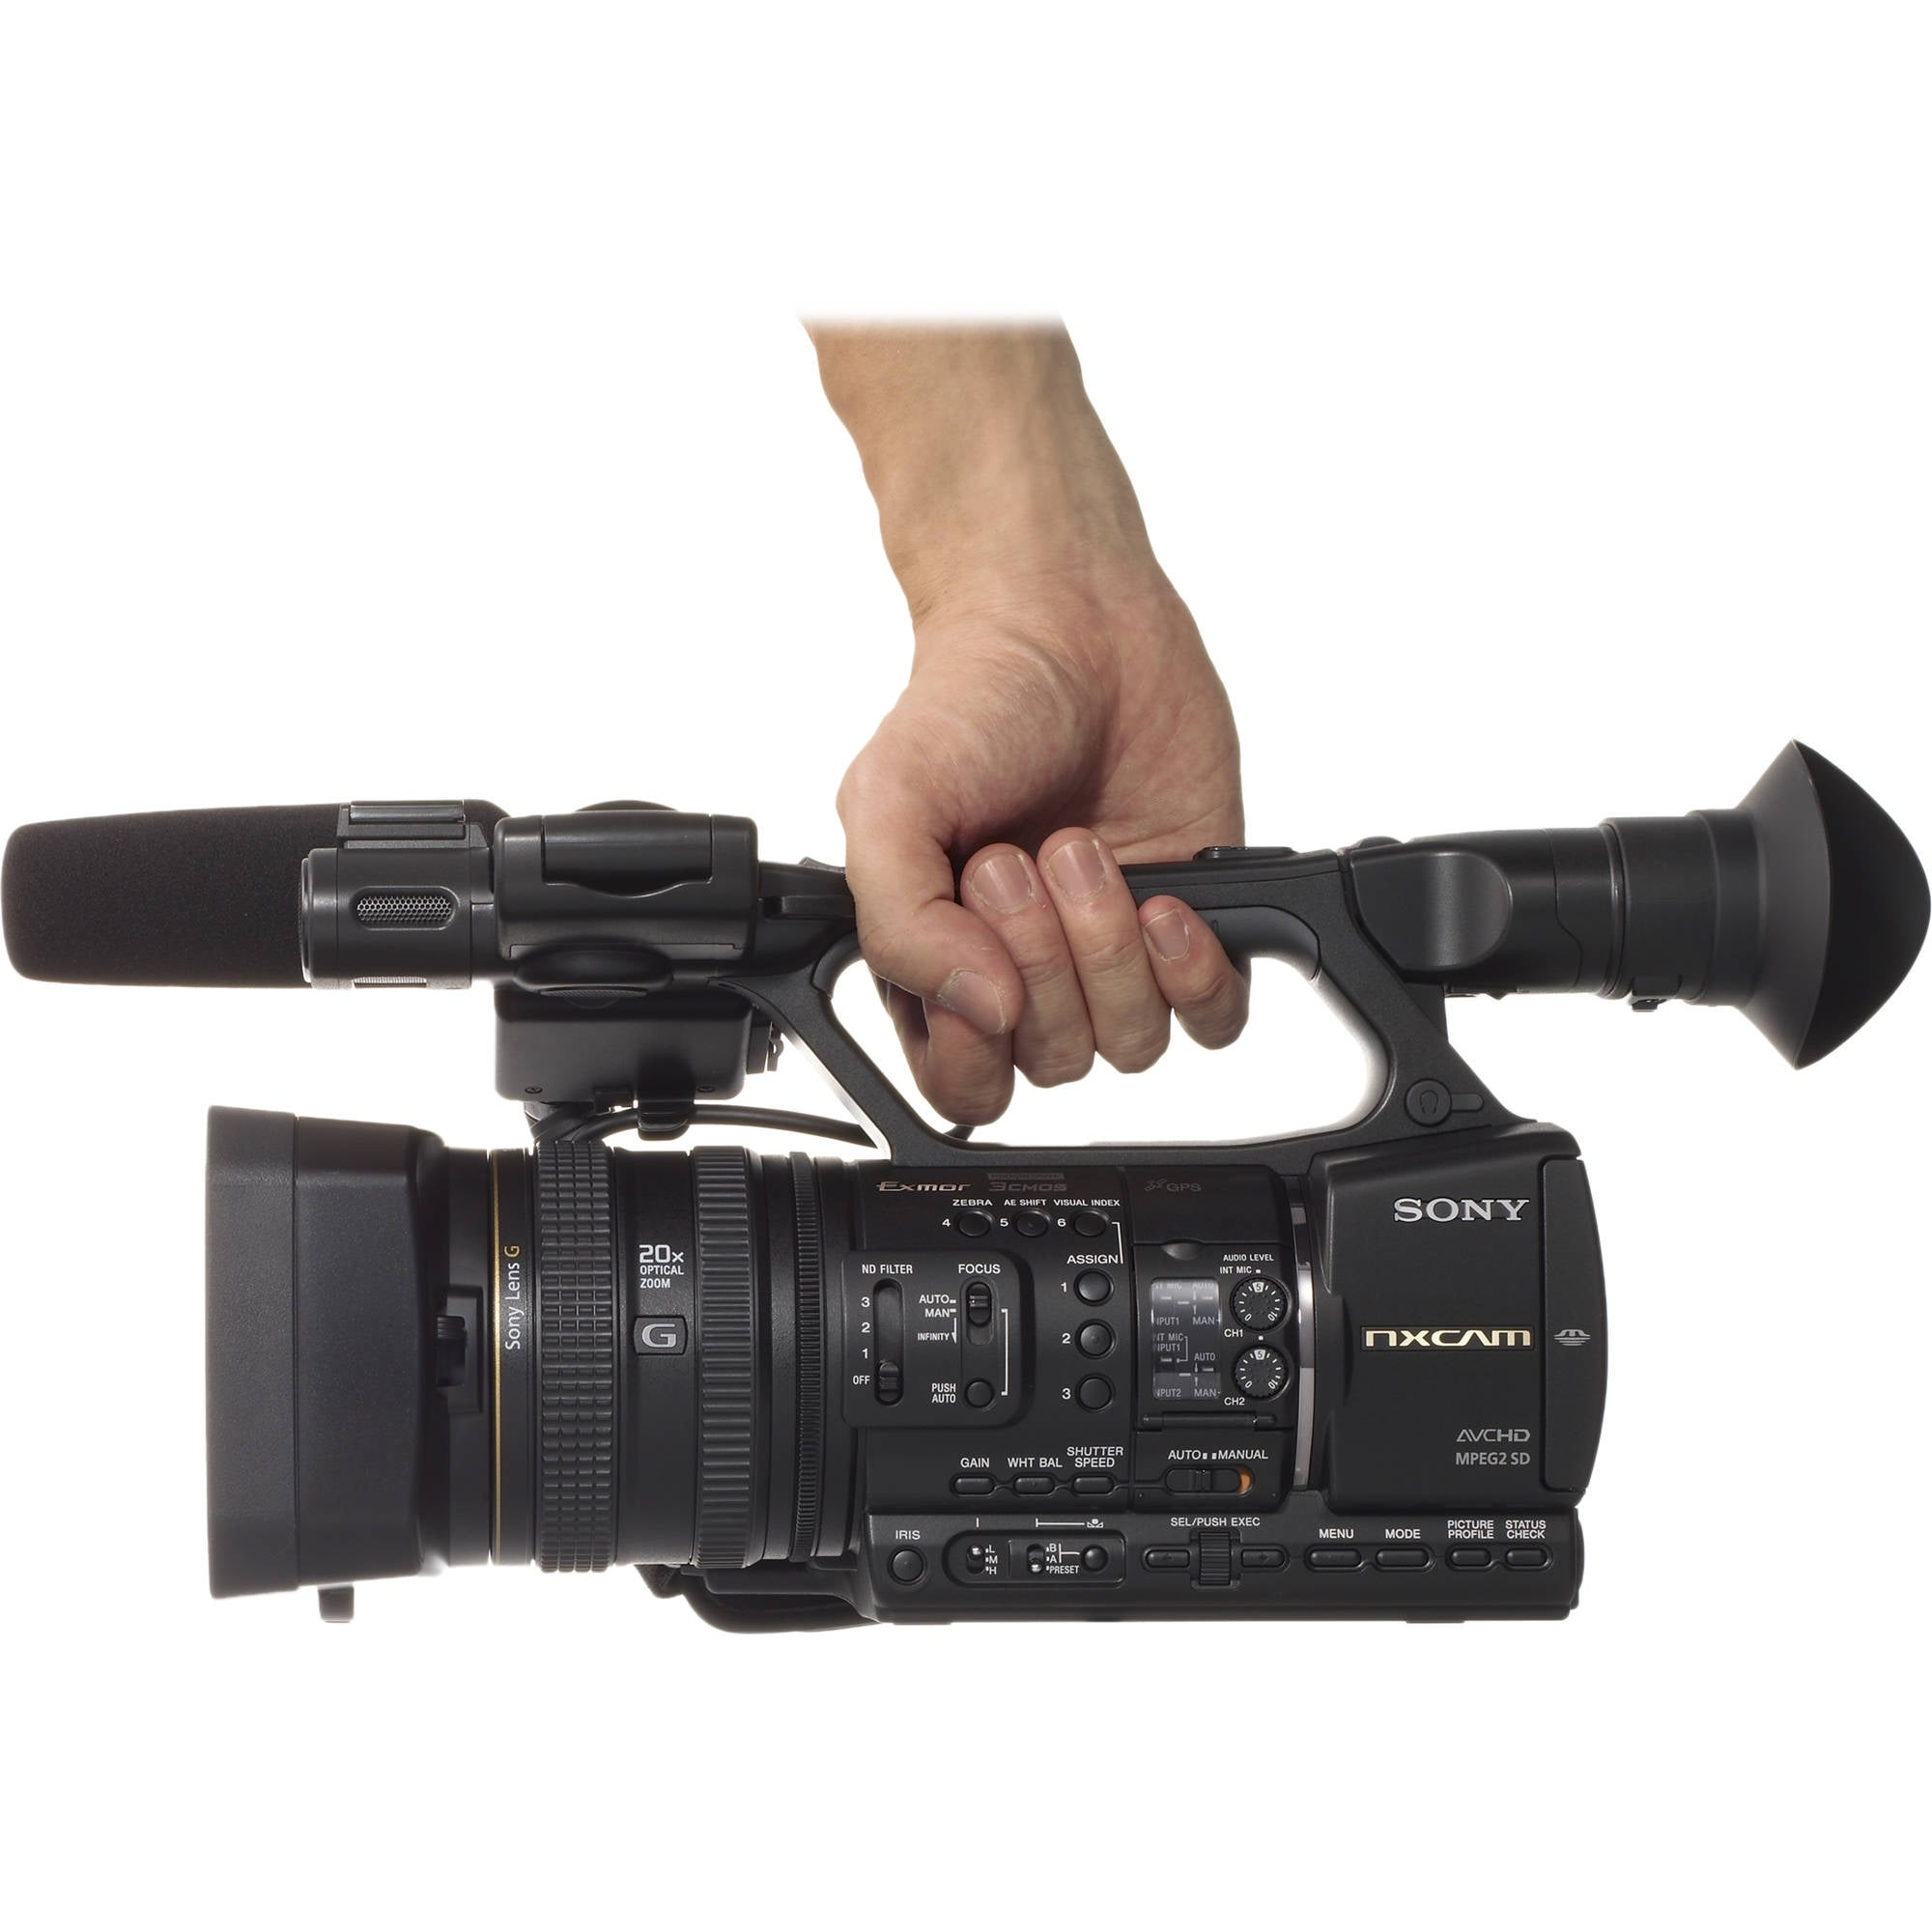 arm electronics camcorders manual best setting instruction guide u2022 rh manualguidelabs today Camcorder Remote Control Canon Professional Cameras